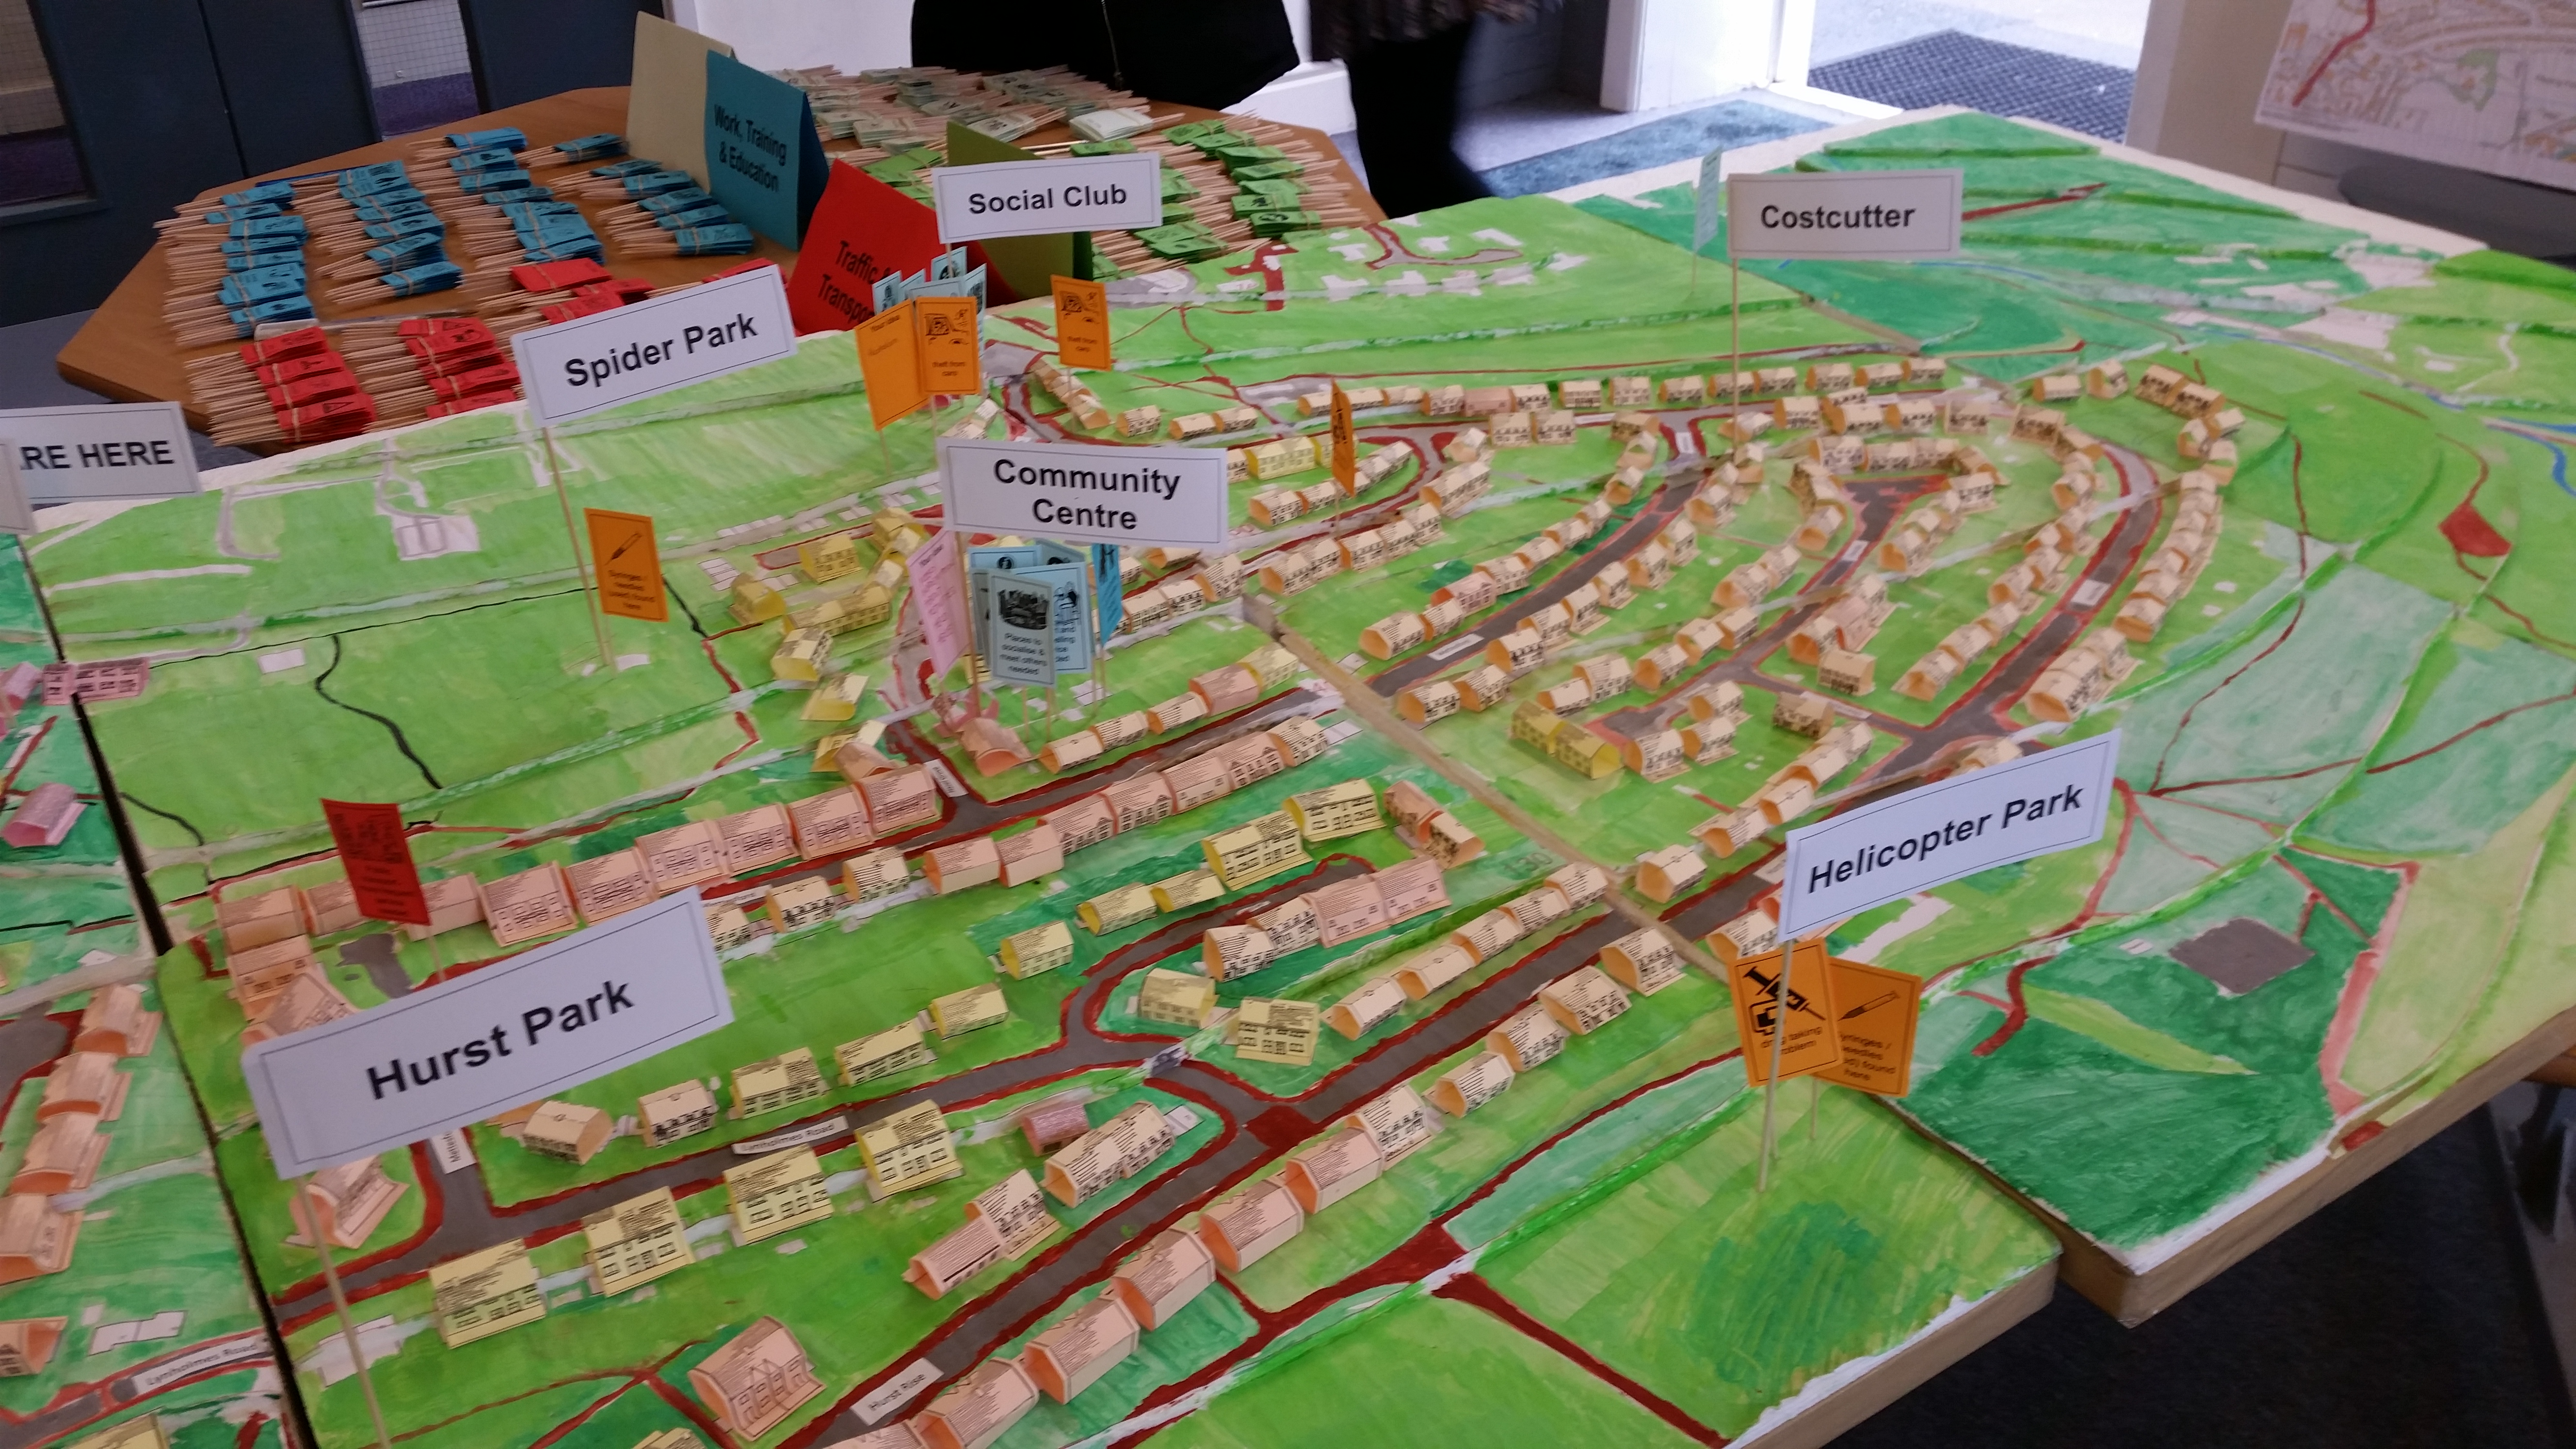 Hurst Farm Consultation 1